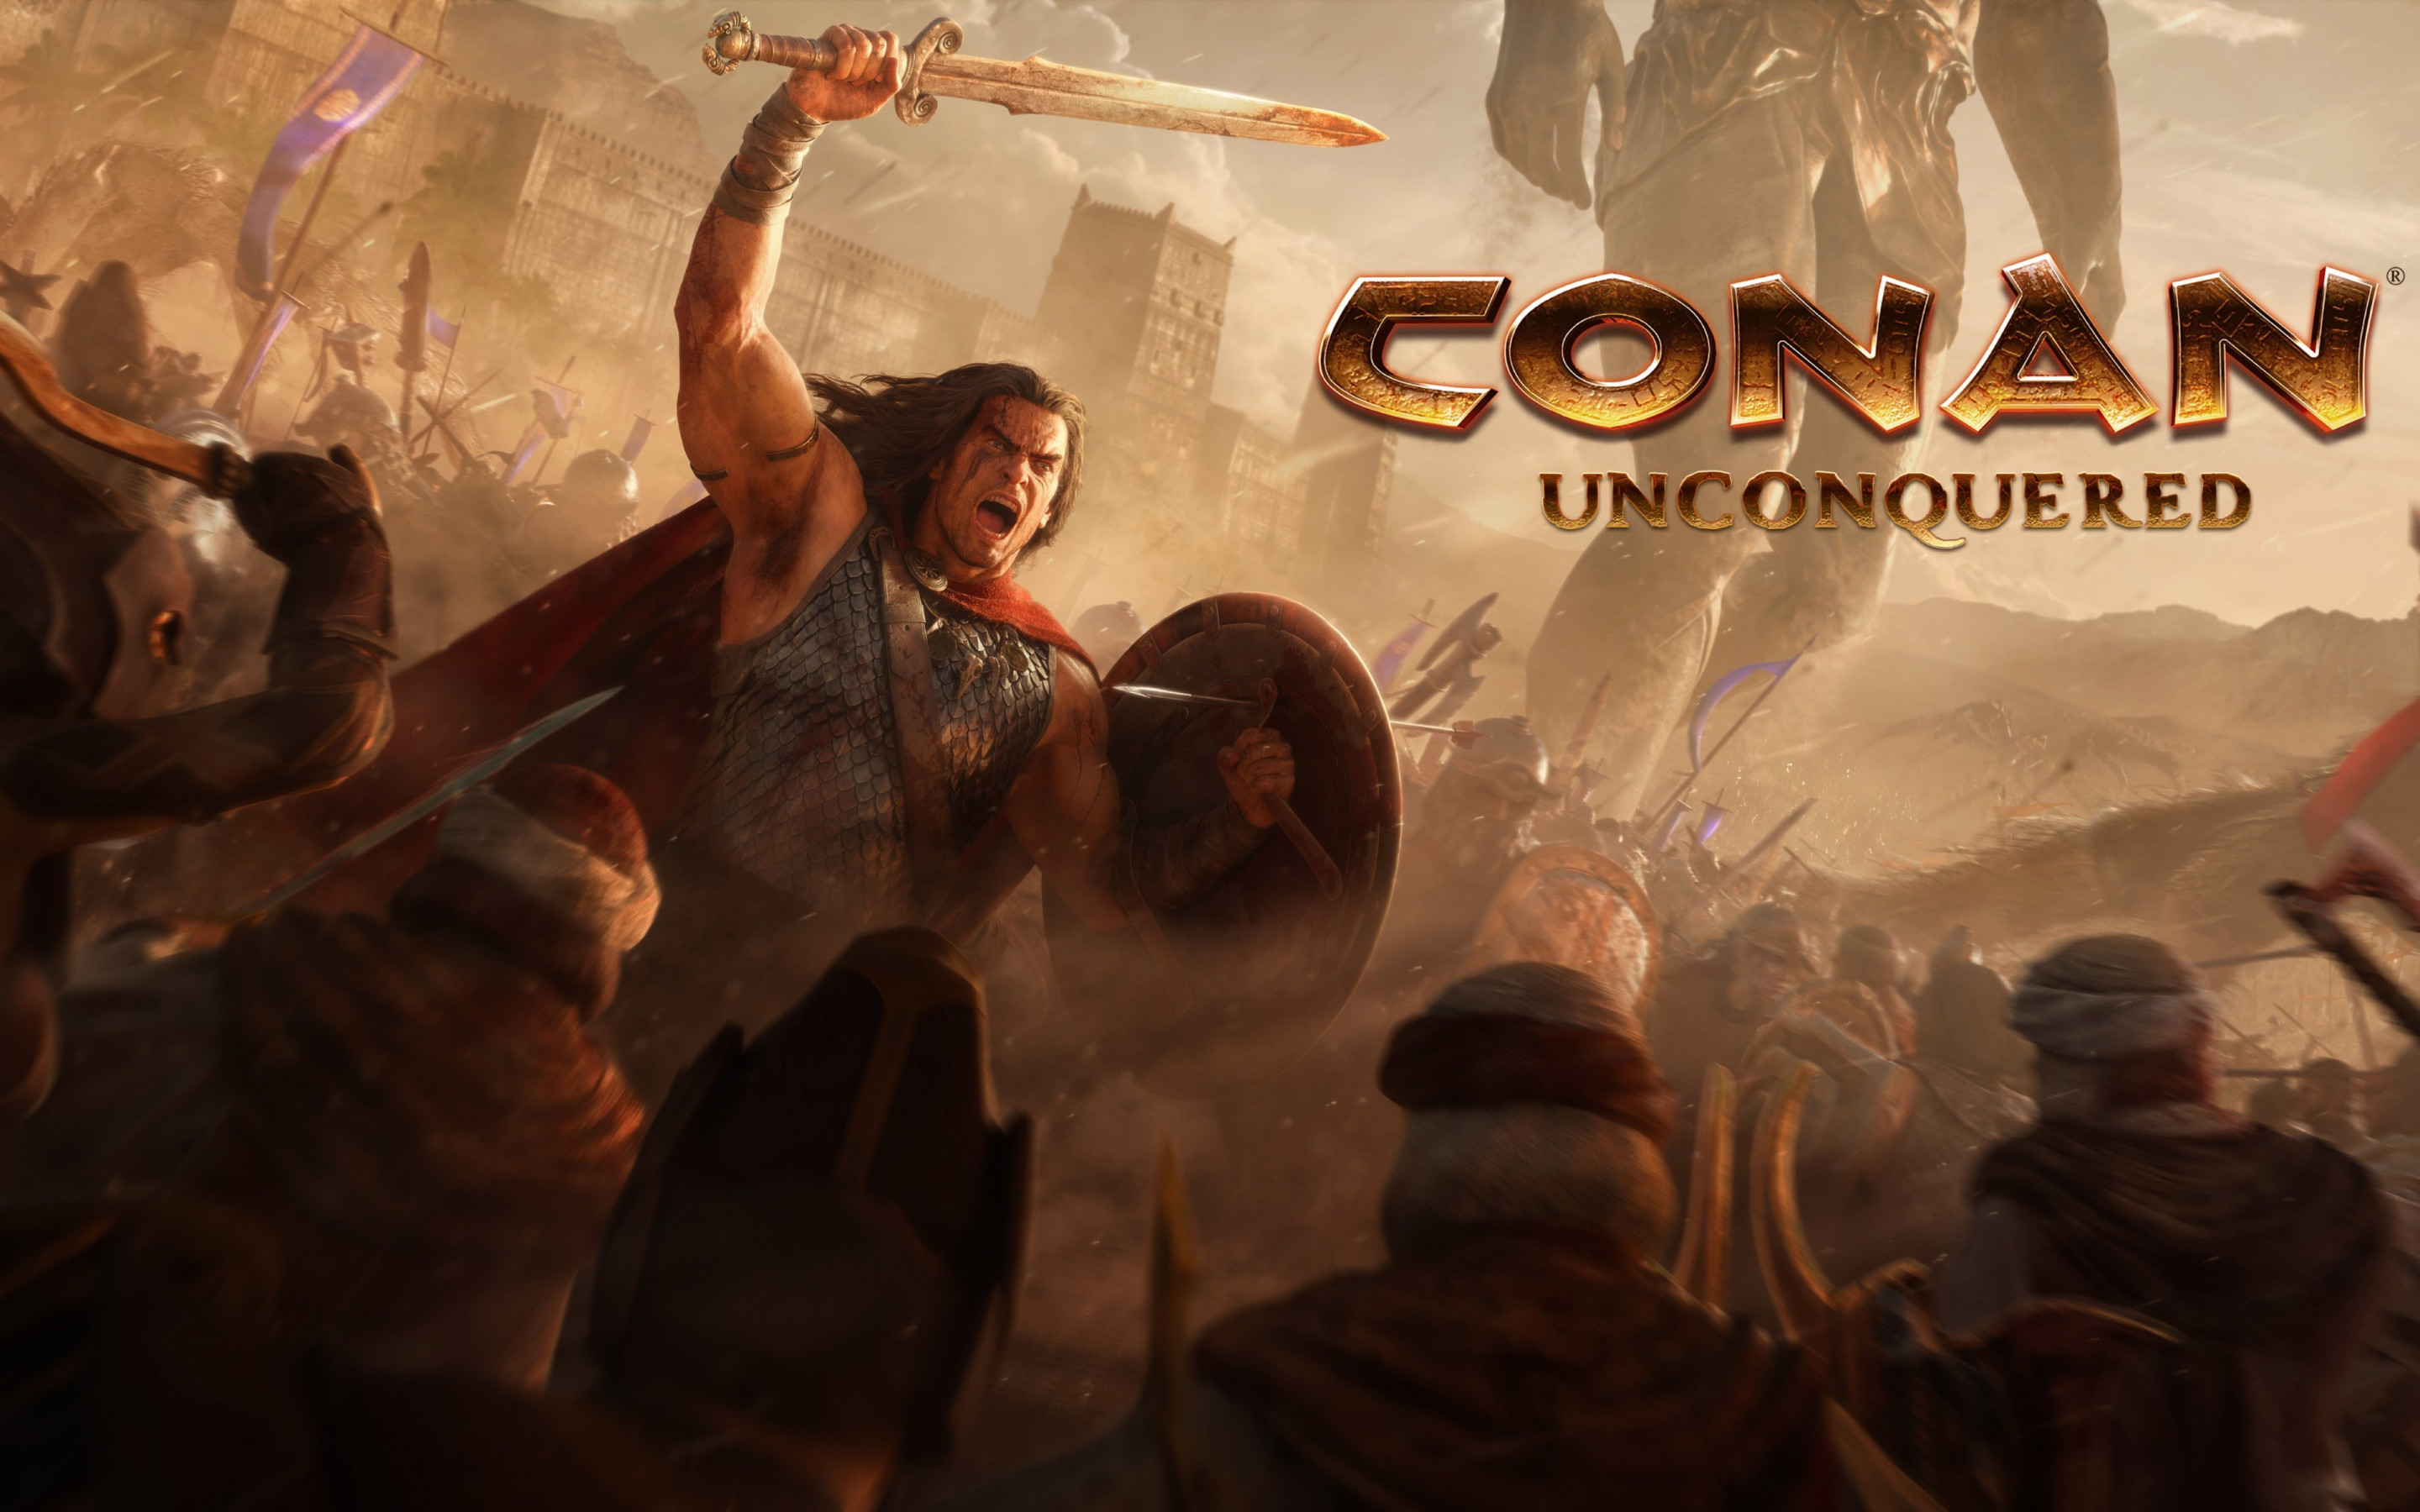 Conan Unconquered wallpaper 2880x1800